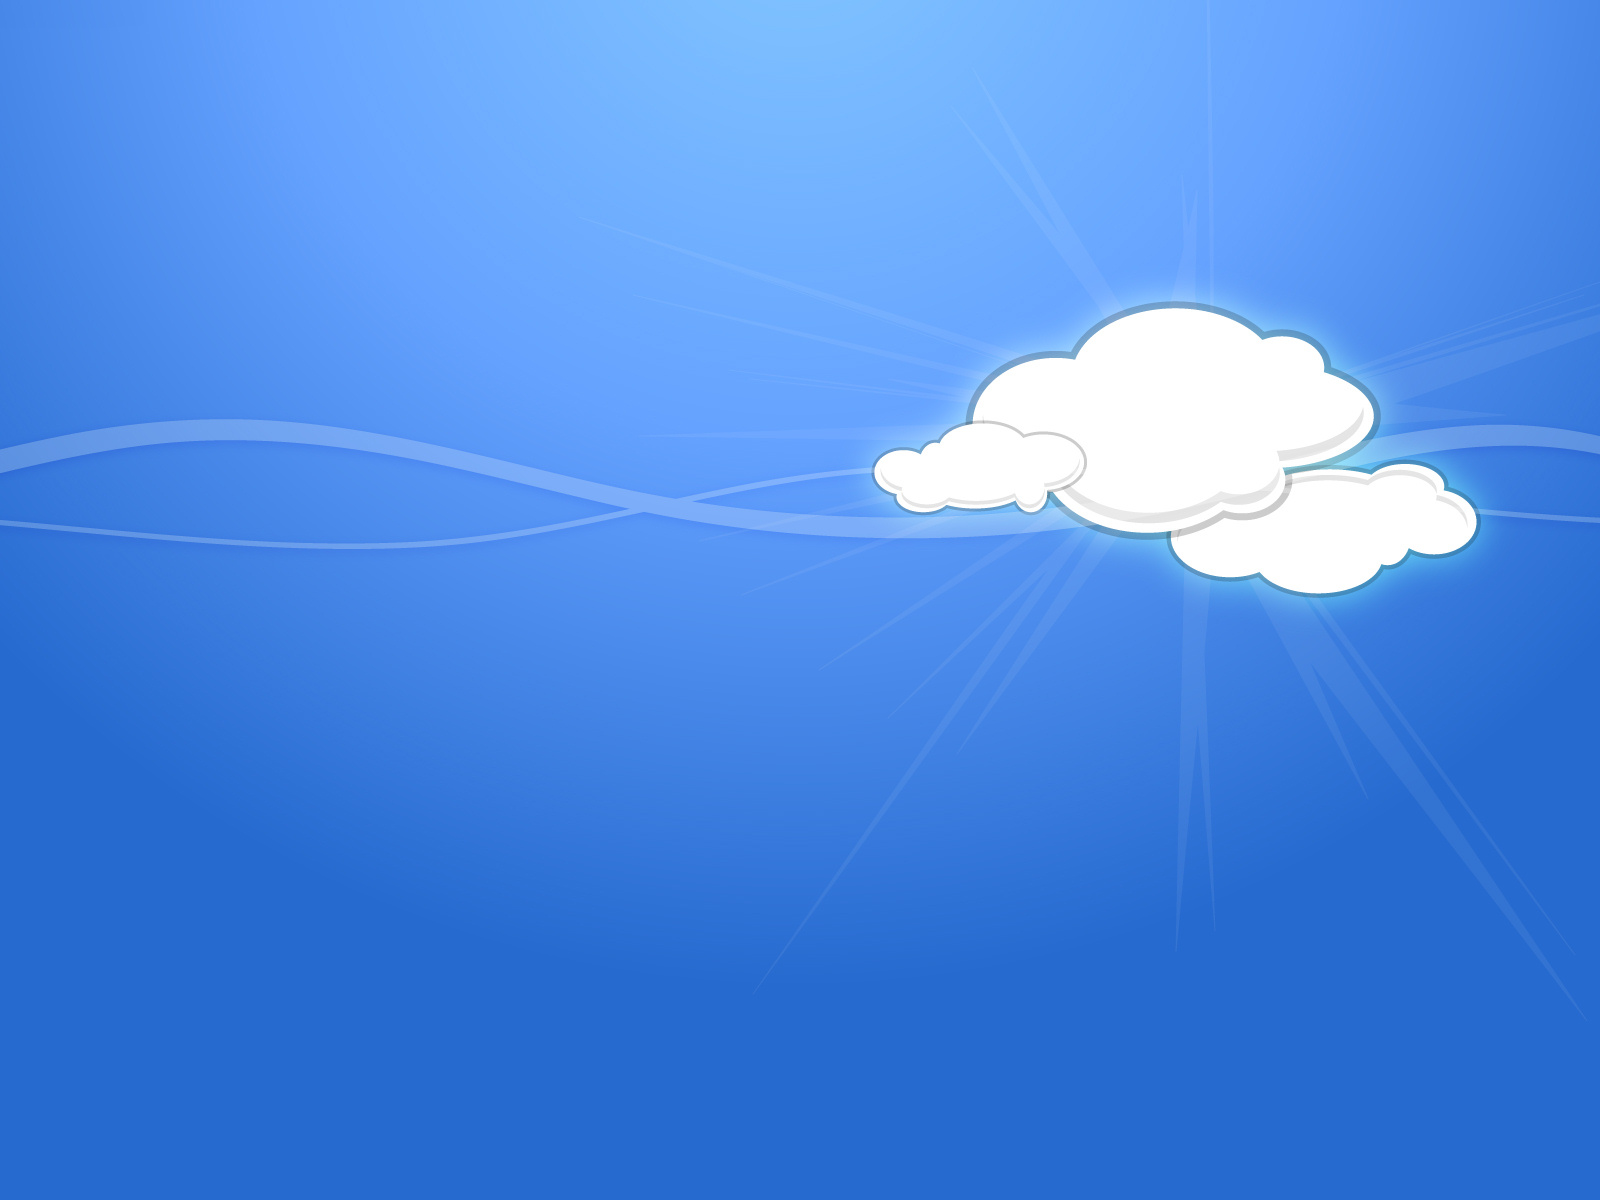 Simple Sky Cloud